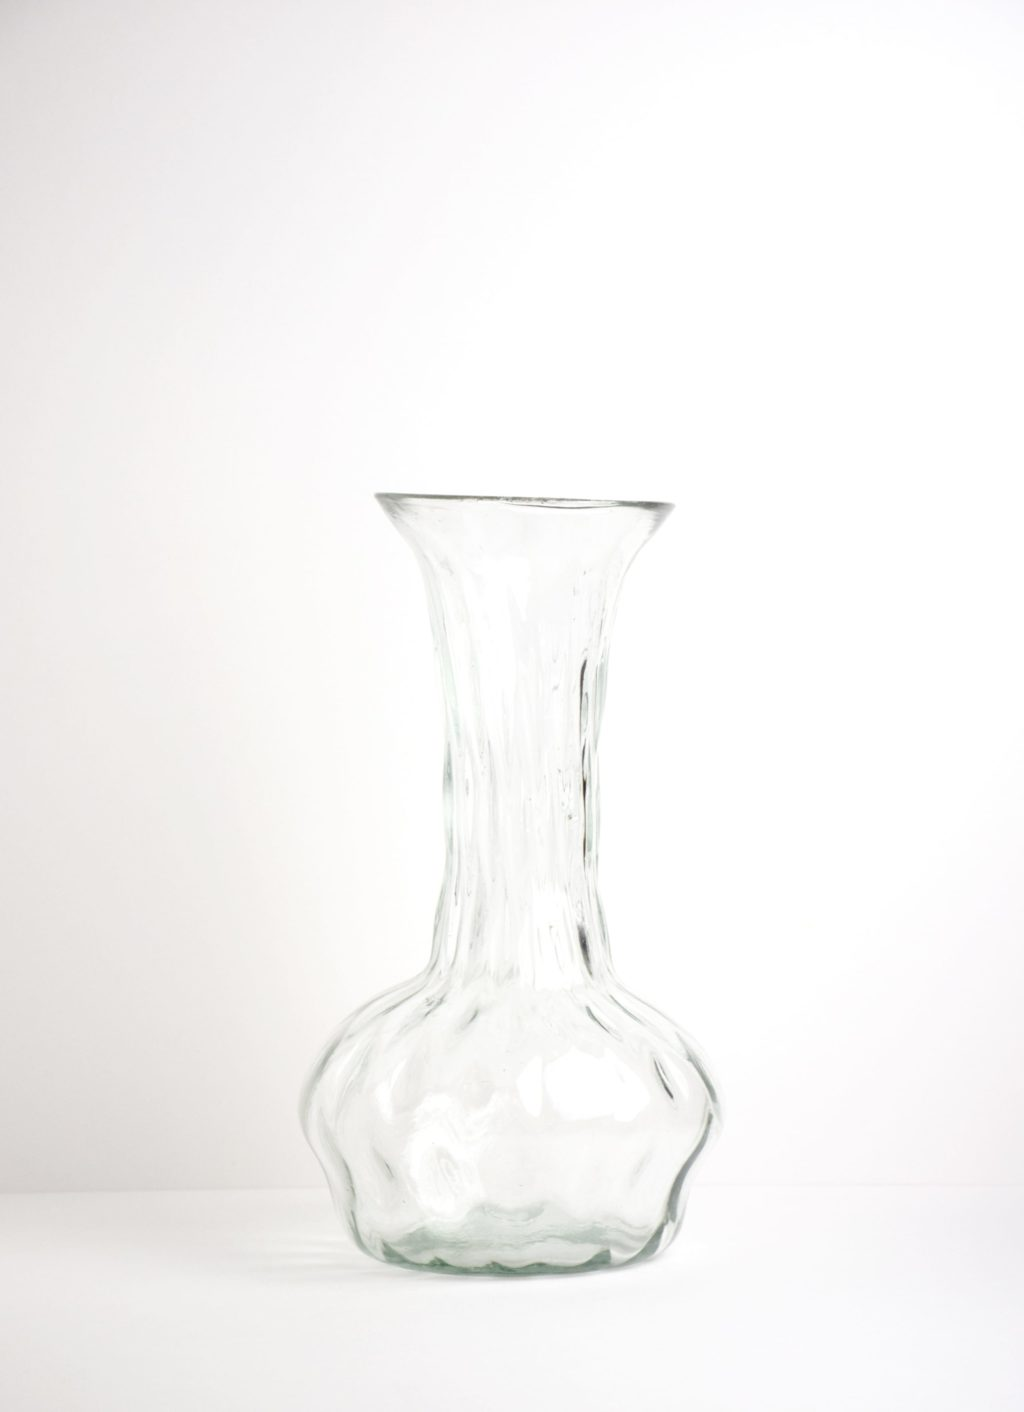 La Soufflerie - Twirl - Glass Vase - transparent